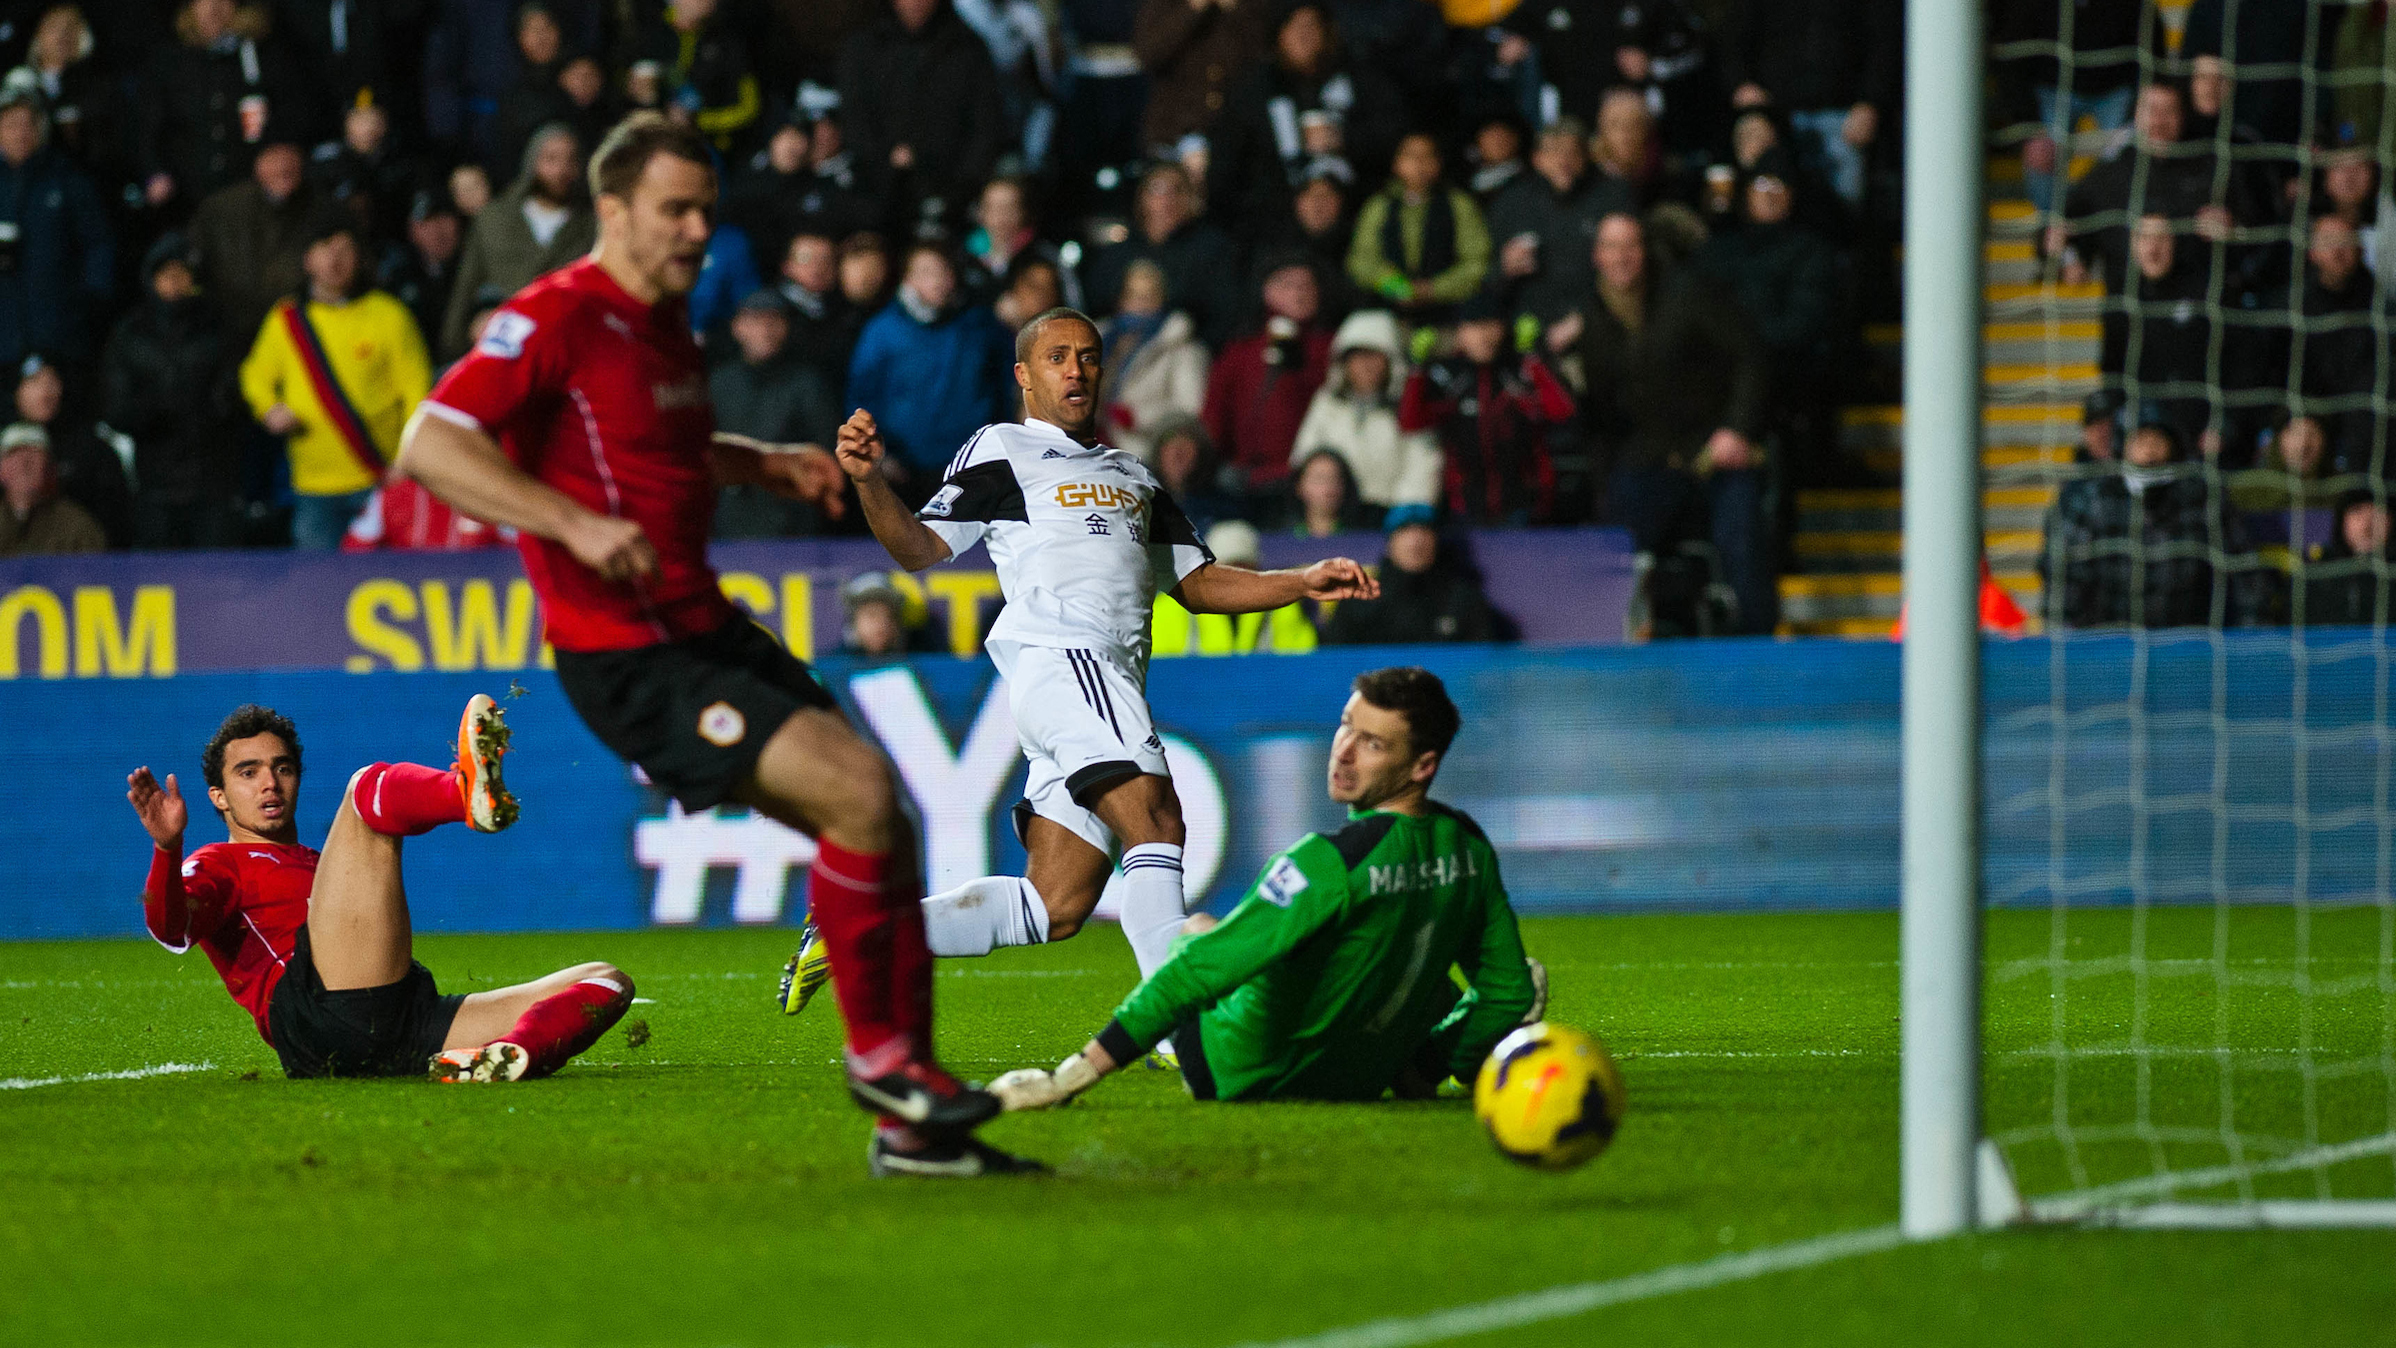 Wayne Routledge Cardiff